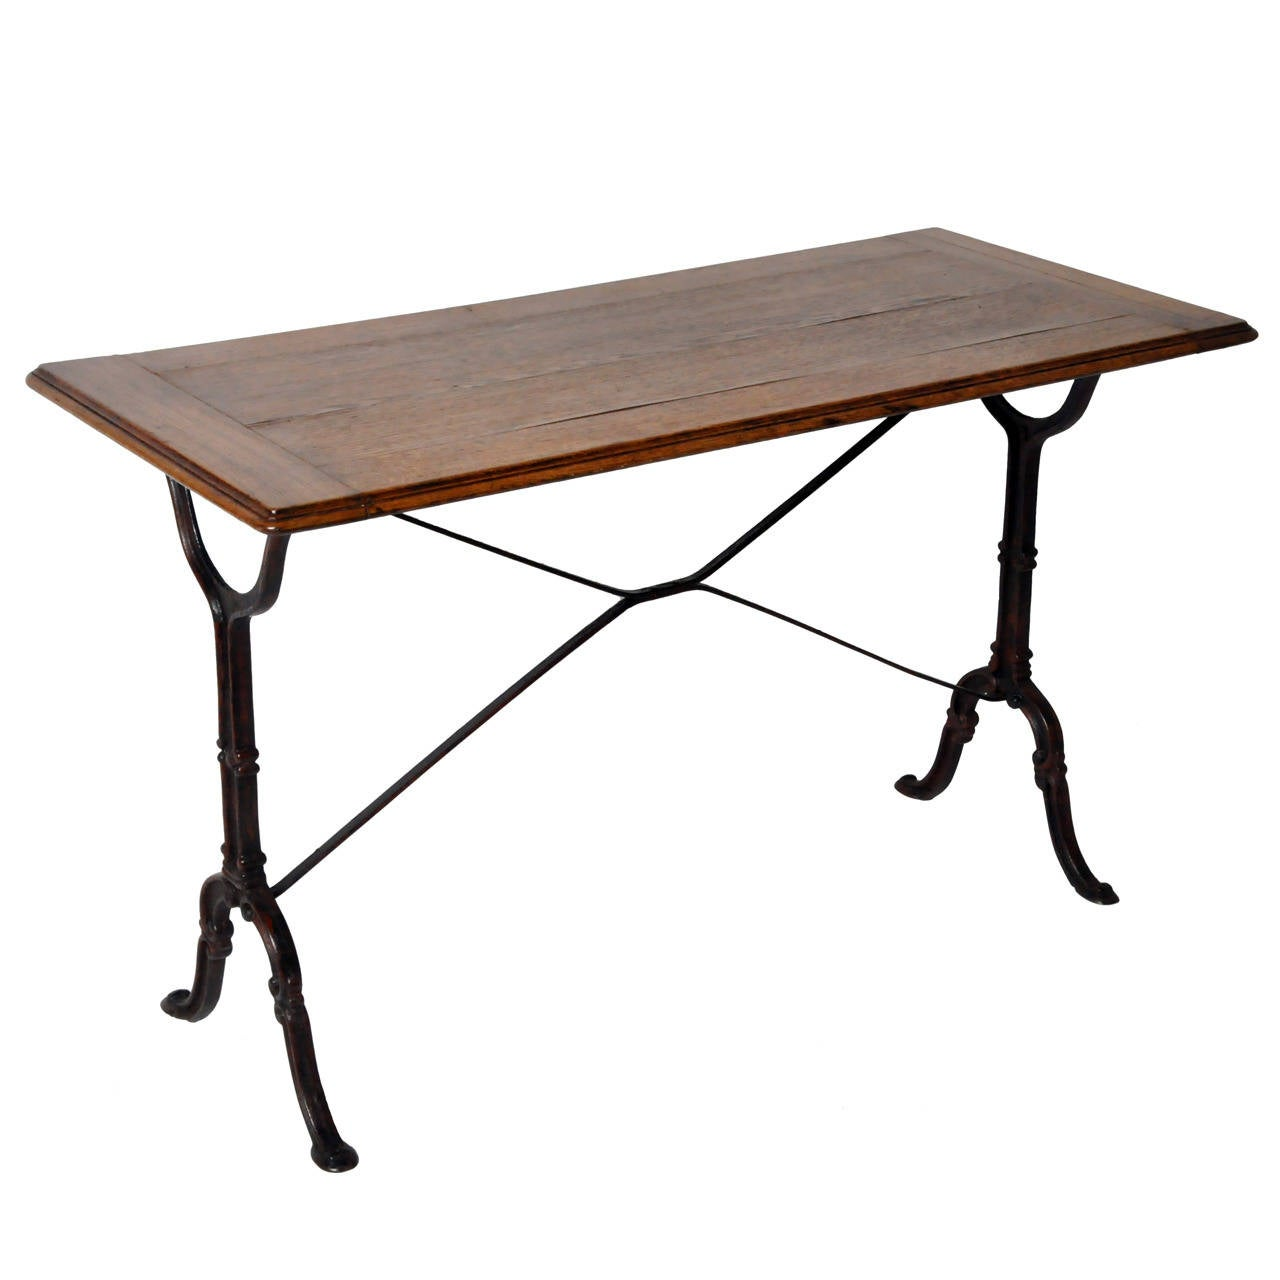 Mid century bistro table at 1stdibs for Mid century bistro table